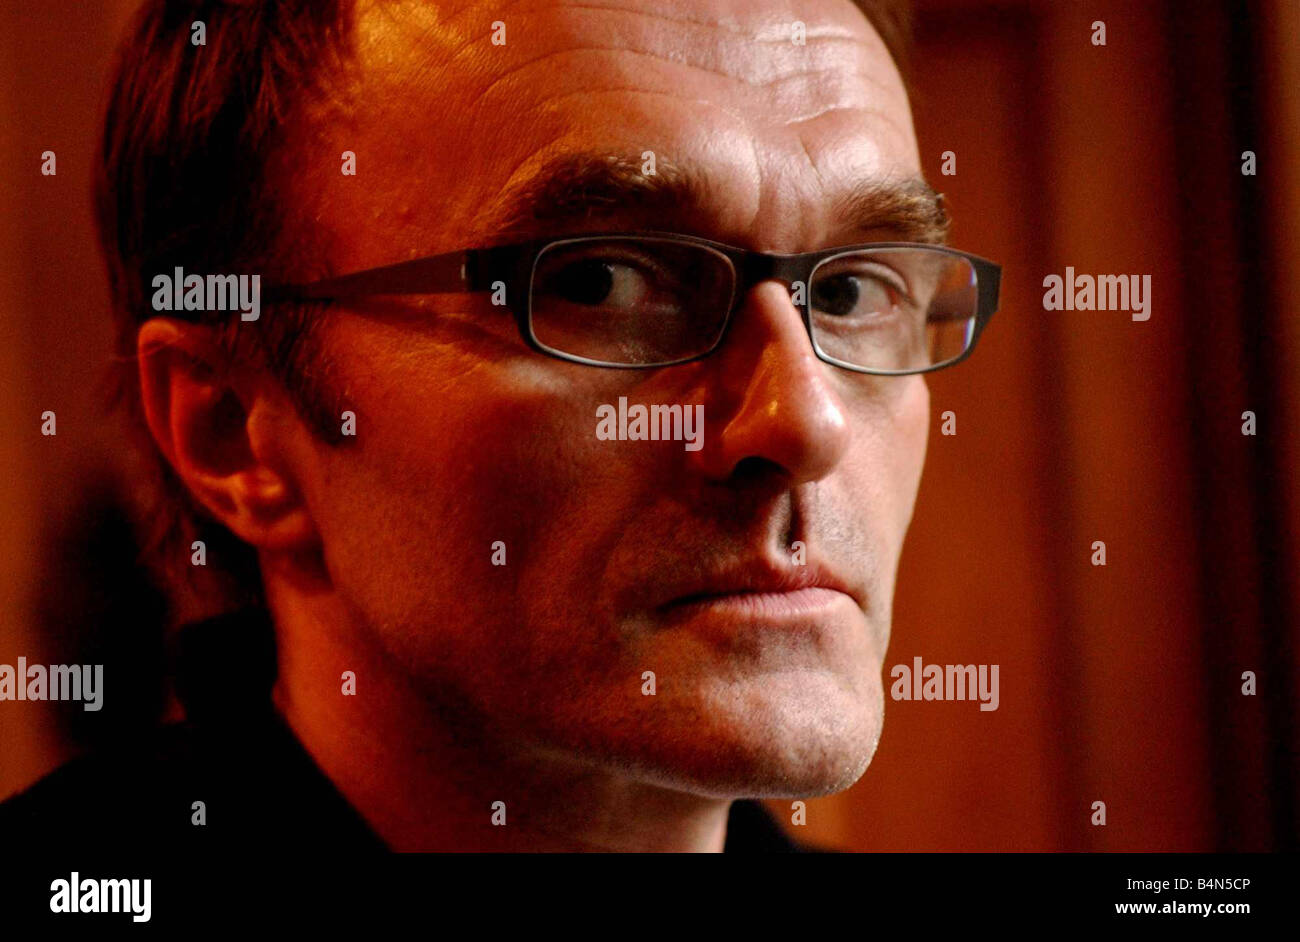 Danny Boyle Scots film director of 28 days later October 2002 Stock Photo